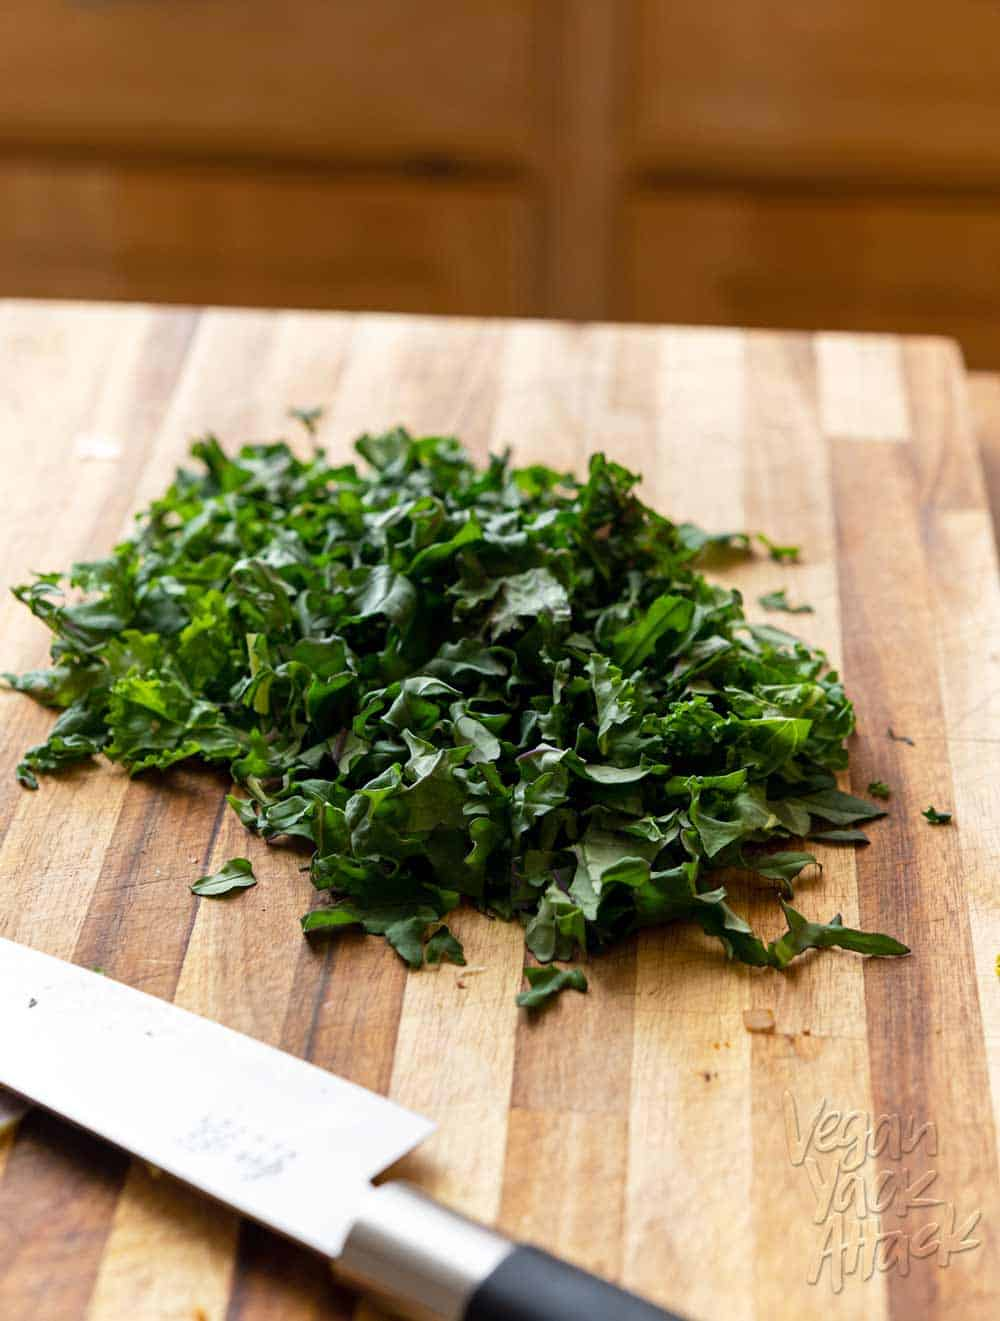 Image of chopped kale on a cutting board